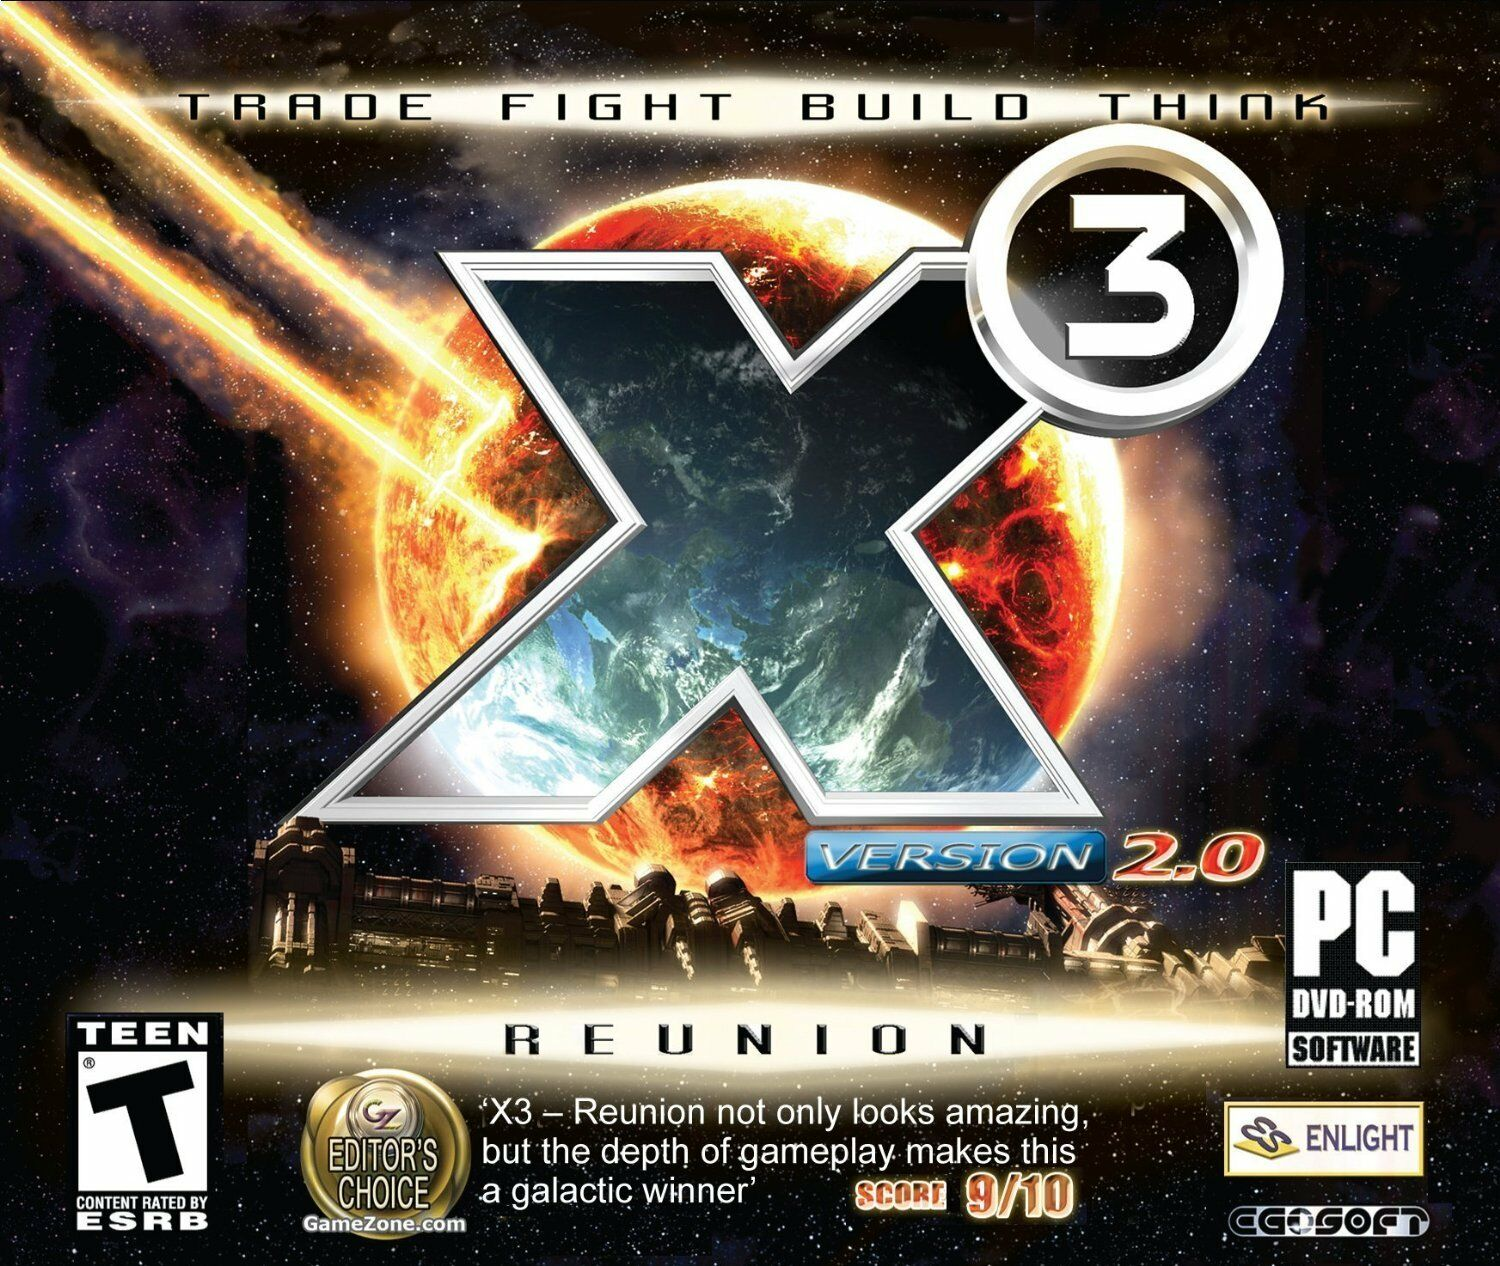 Computer Games - X3 The Reunion 2.0 PC Game Window 10 8 7 XP Computer space simulation spacecraft